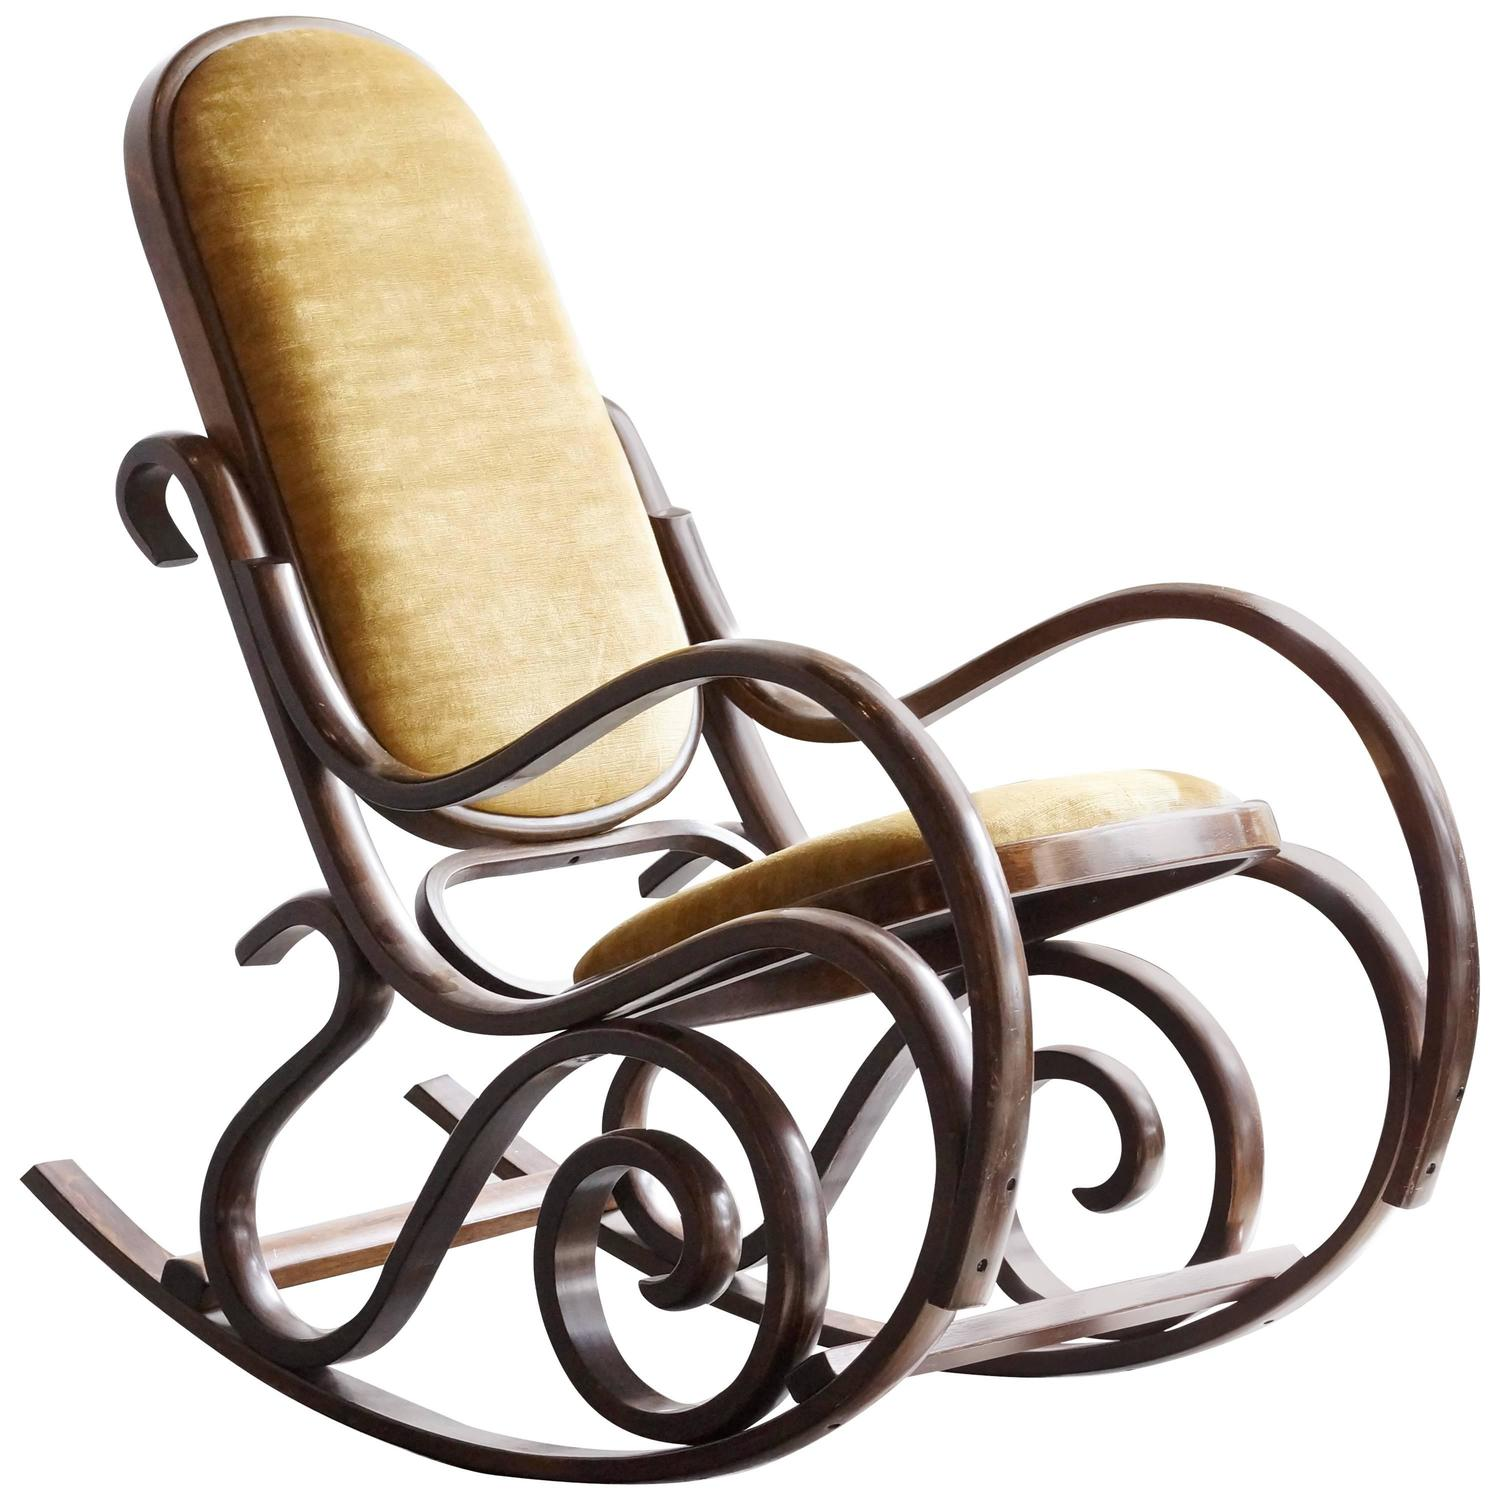 Original white painted bentwood rocking chair is no longer available - Original White Painted Bentwood Rocking Chair Is No Longer Available 54